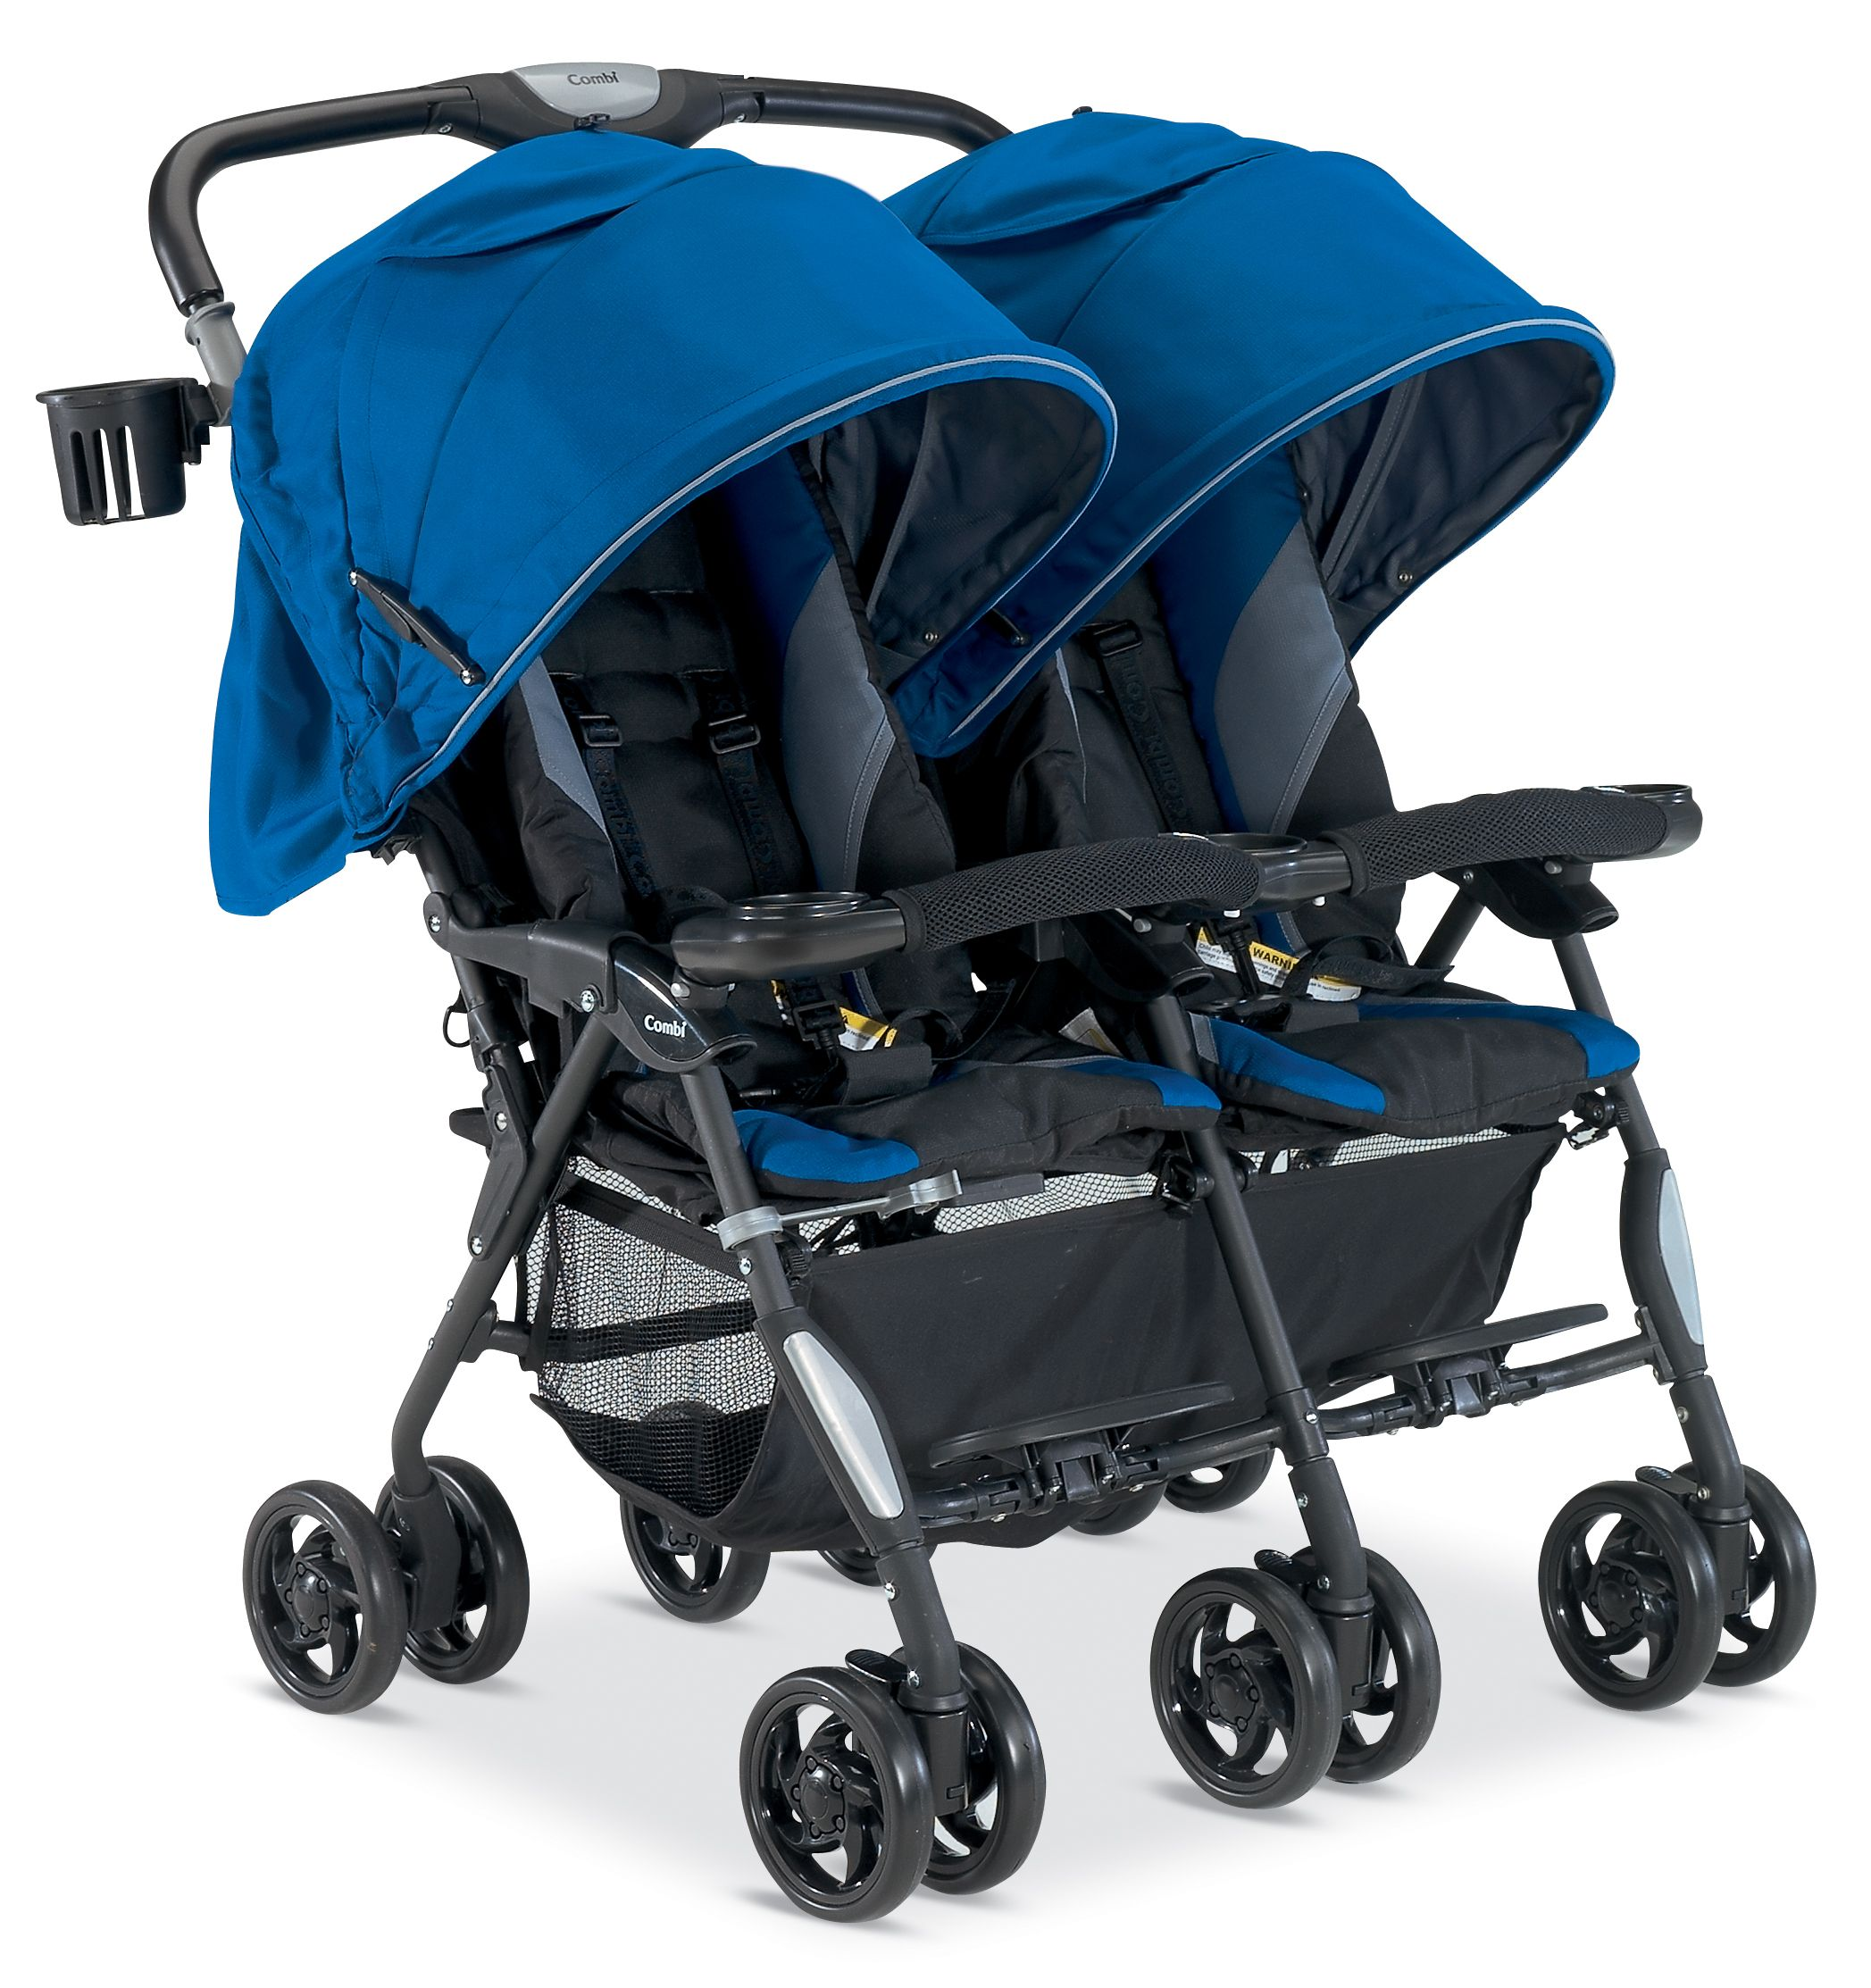 The Combi Twin Cosmo in Royal Blue Twin strollers